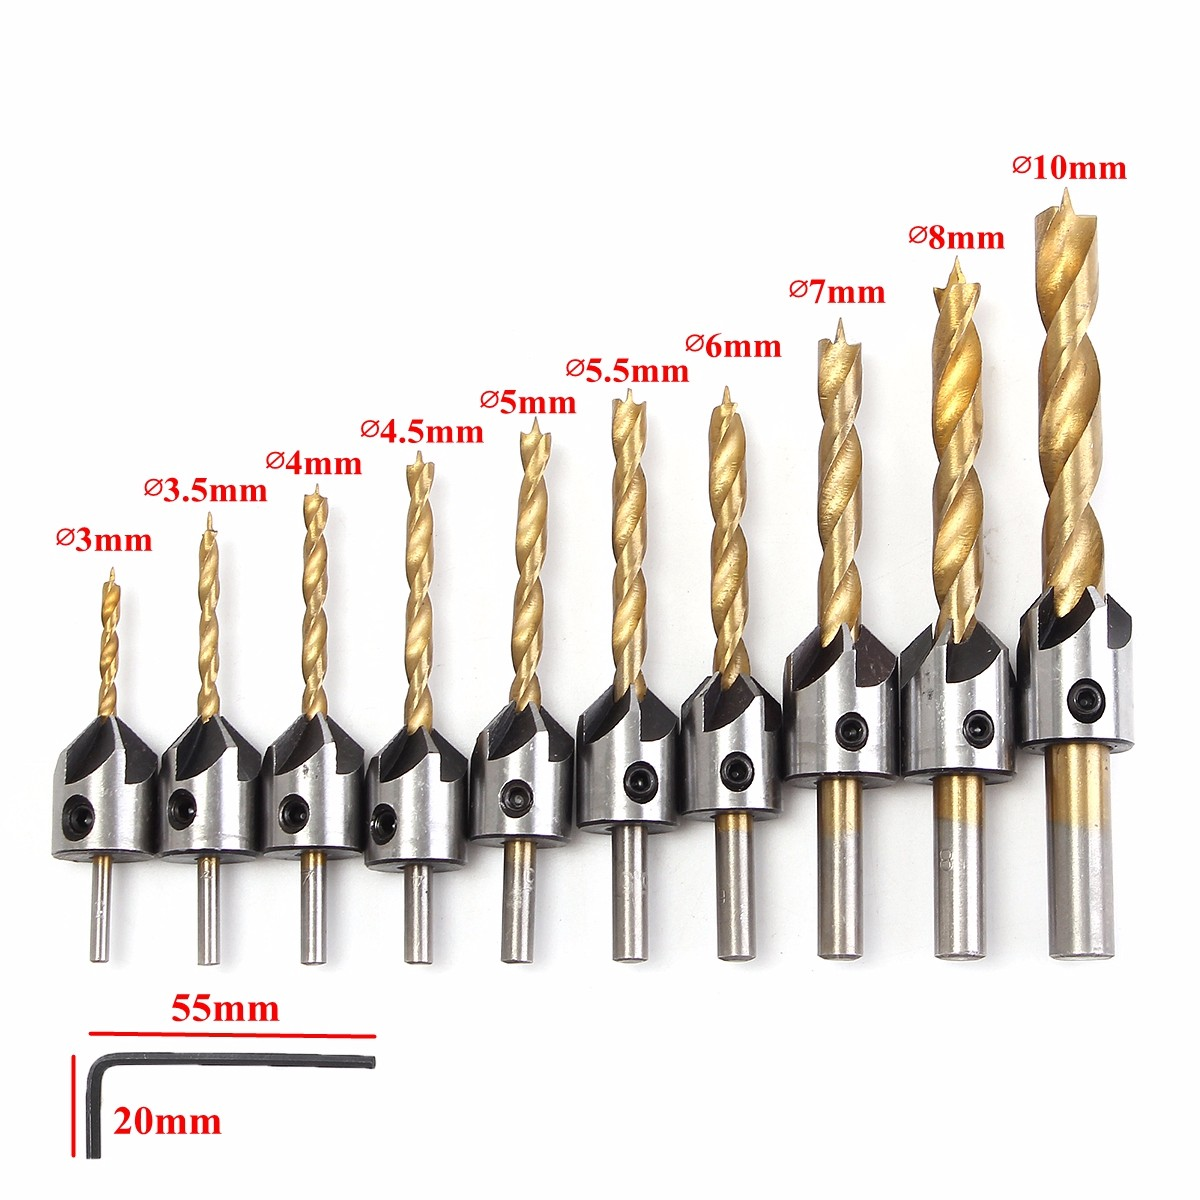 New High Speed Steel Metal Coat Typical Twist Countersink Drill Bit Set Tool 3-10mm Different Sizes HSS Drill Bit Wrench Kit